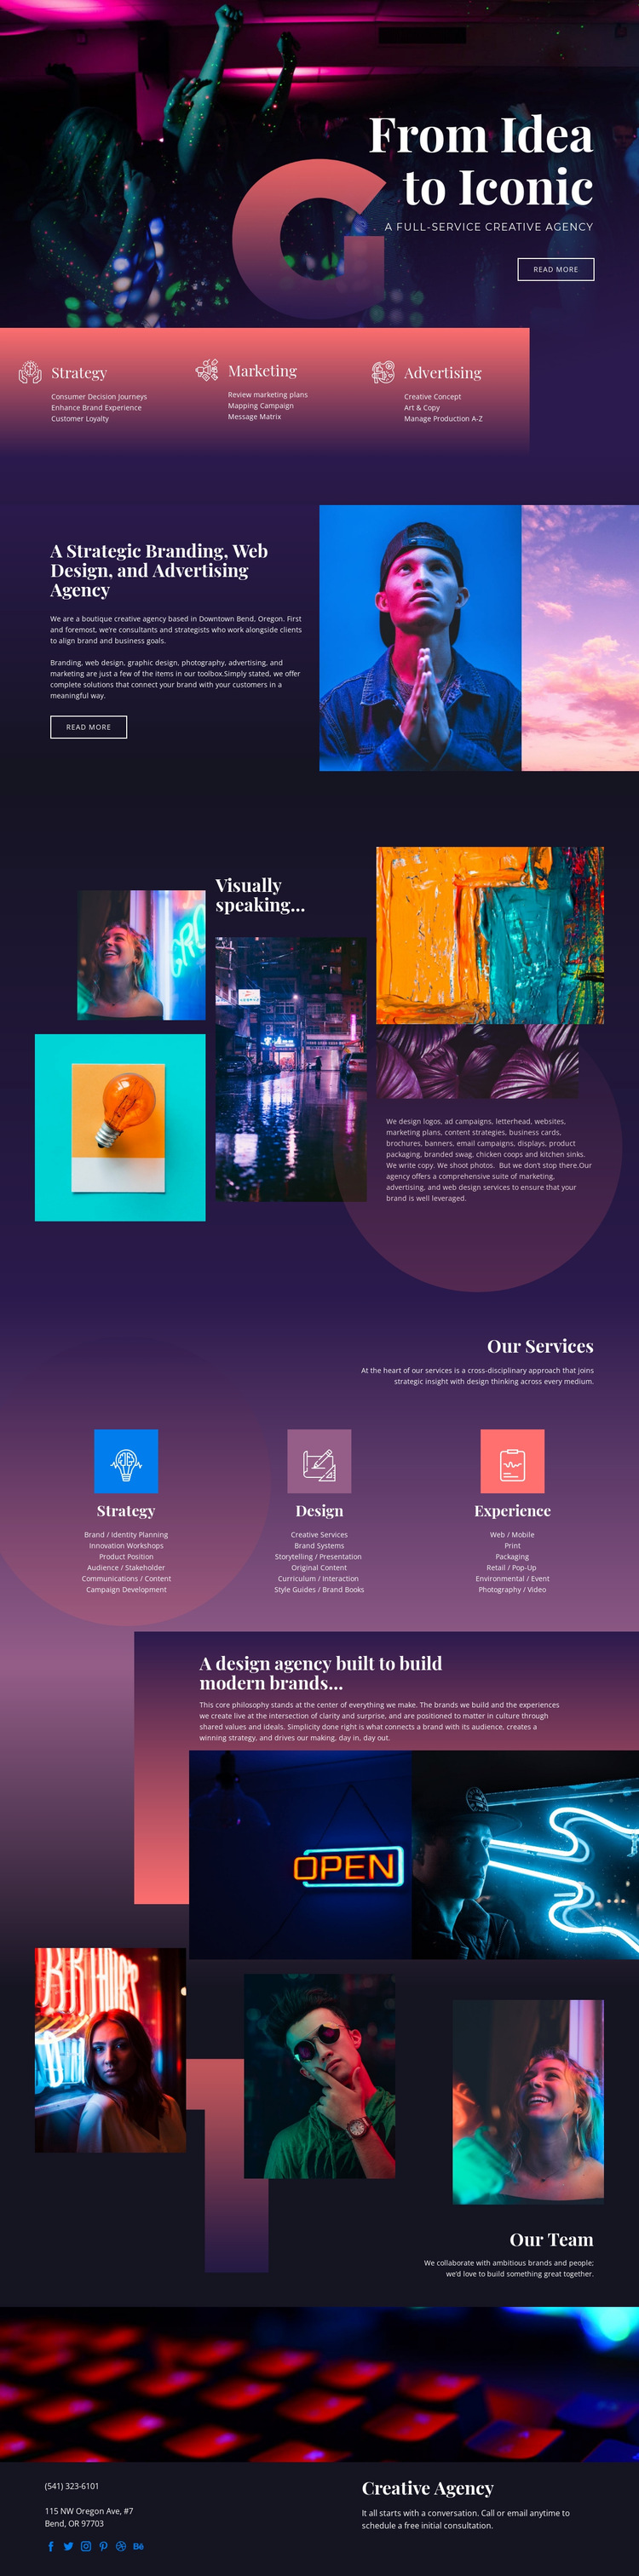 Iconic ideas of art HTML5 Template